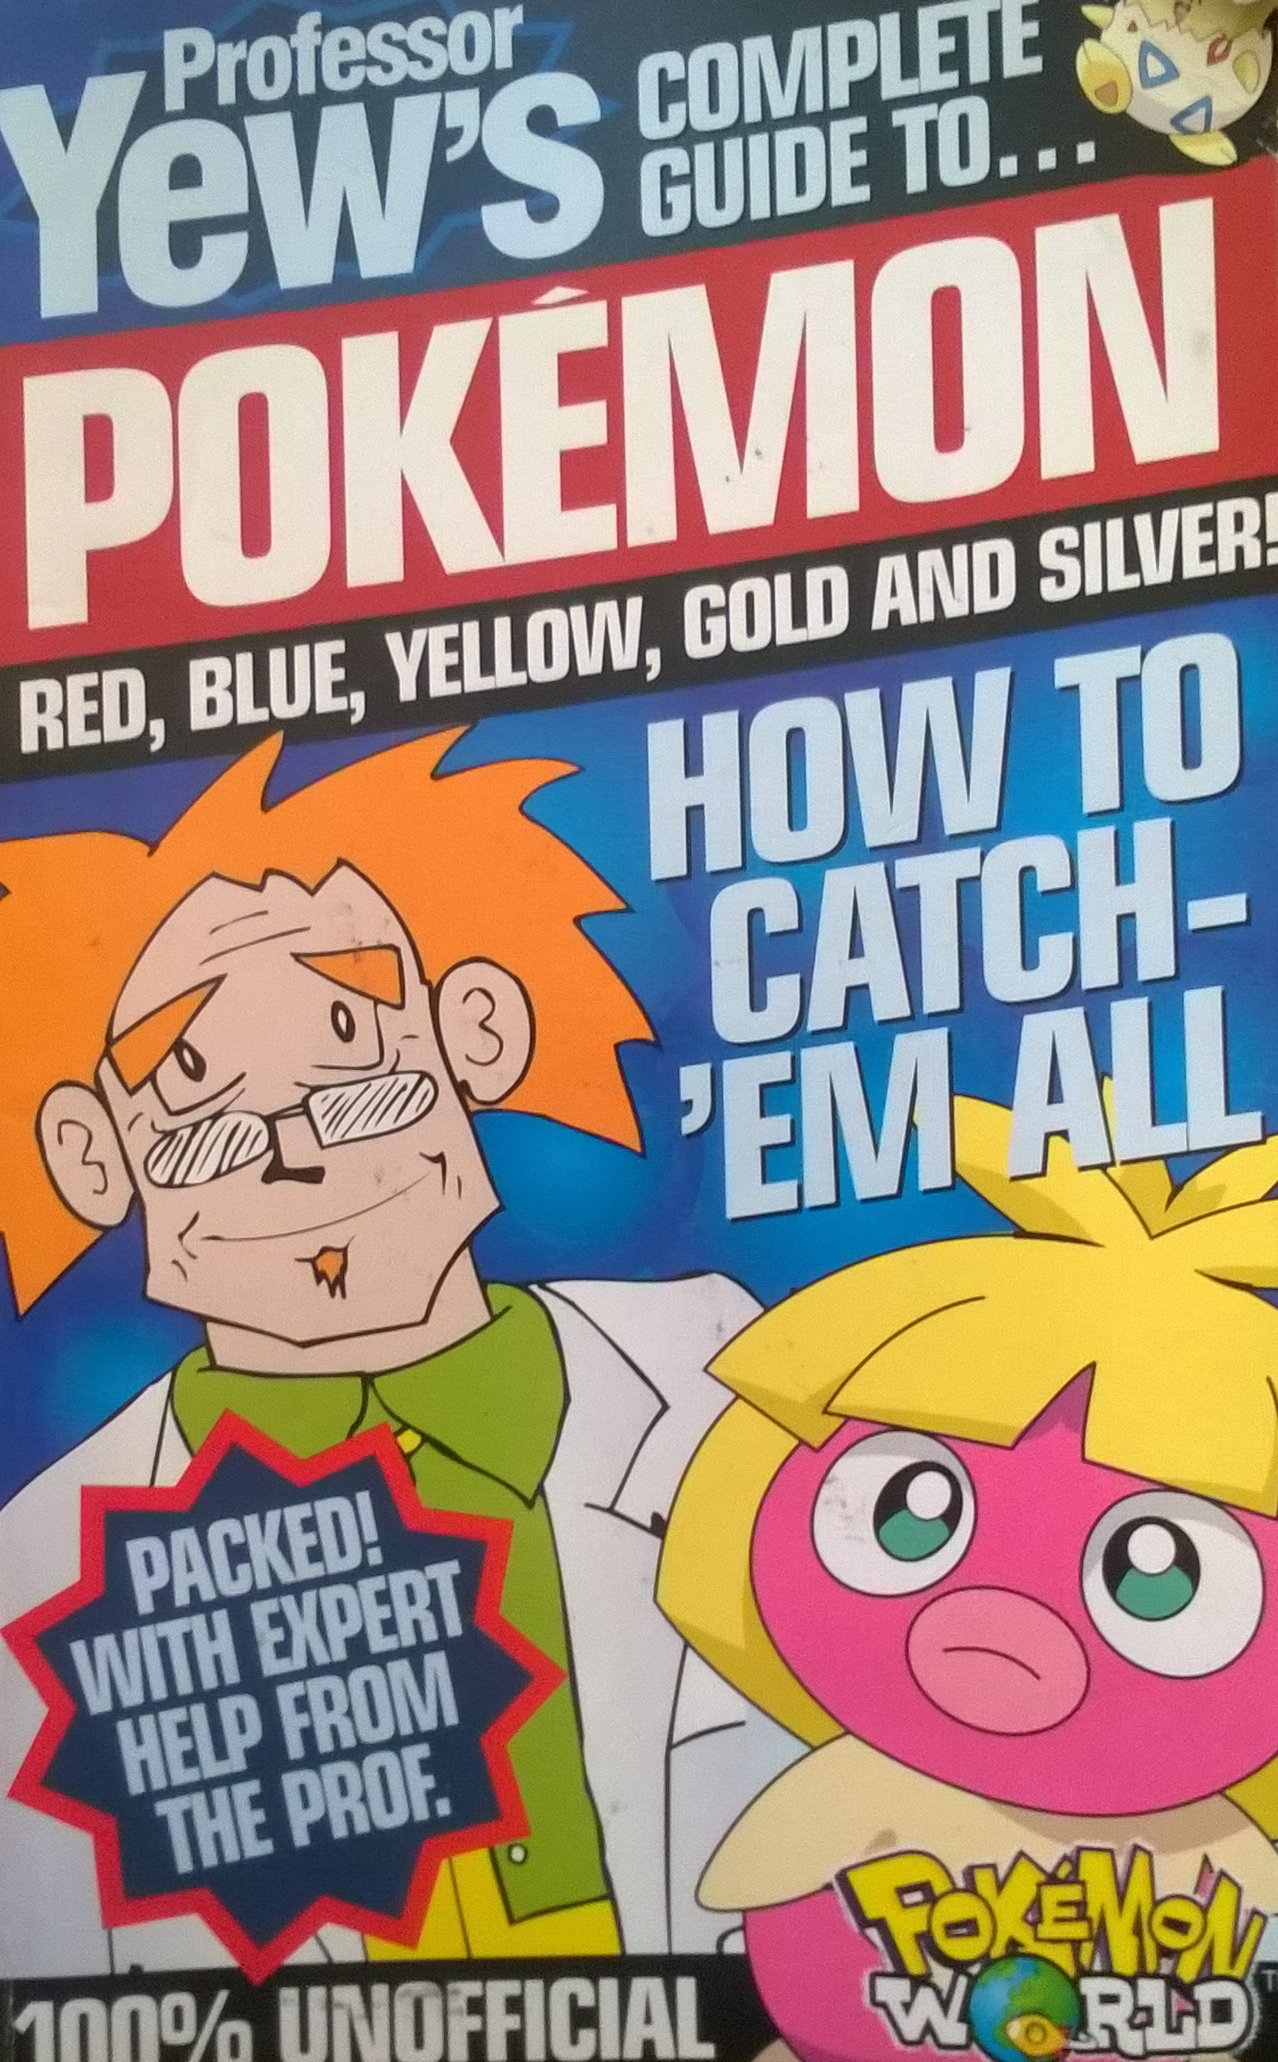 Professor Yew's Complete Guide to Pokemon Red, Blue, Yellow, Gold and SIlver!